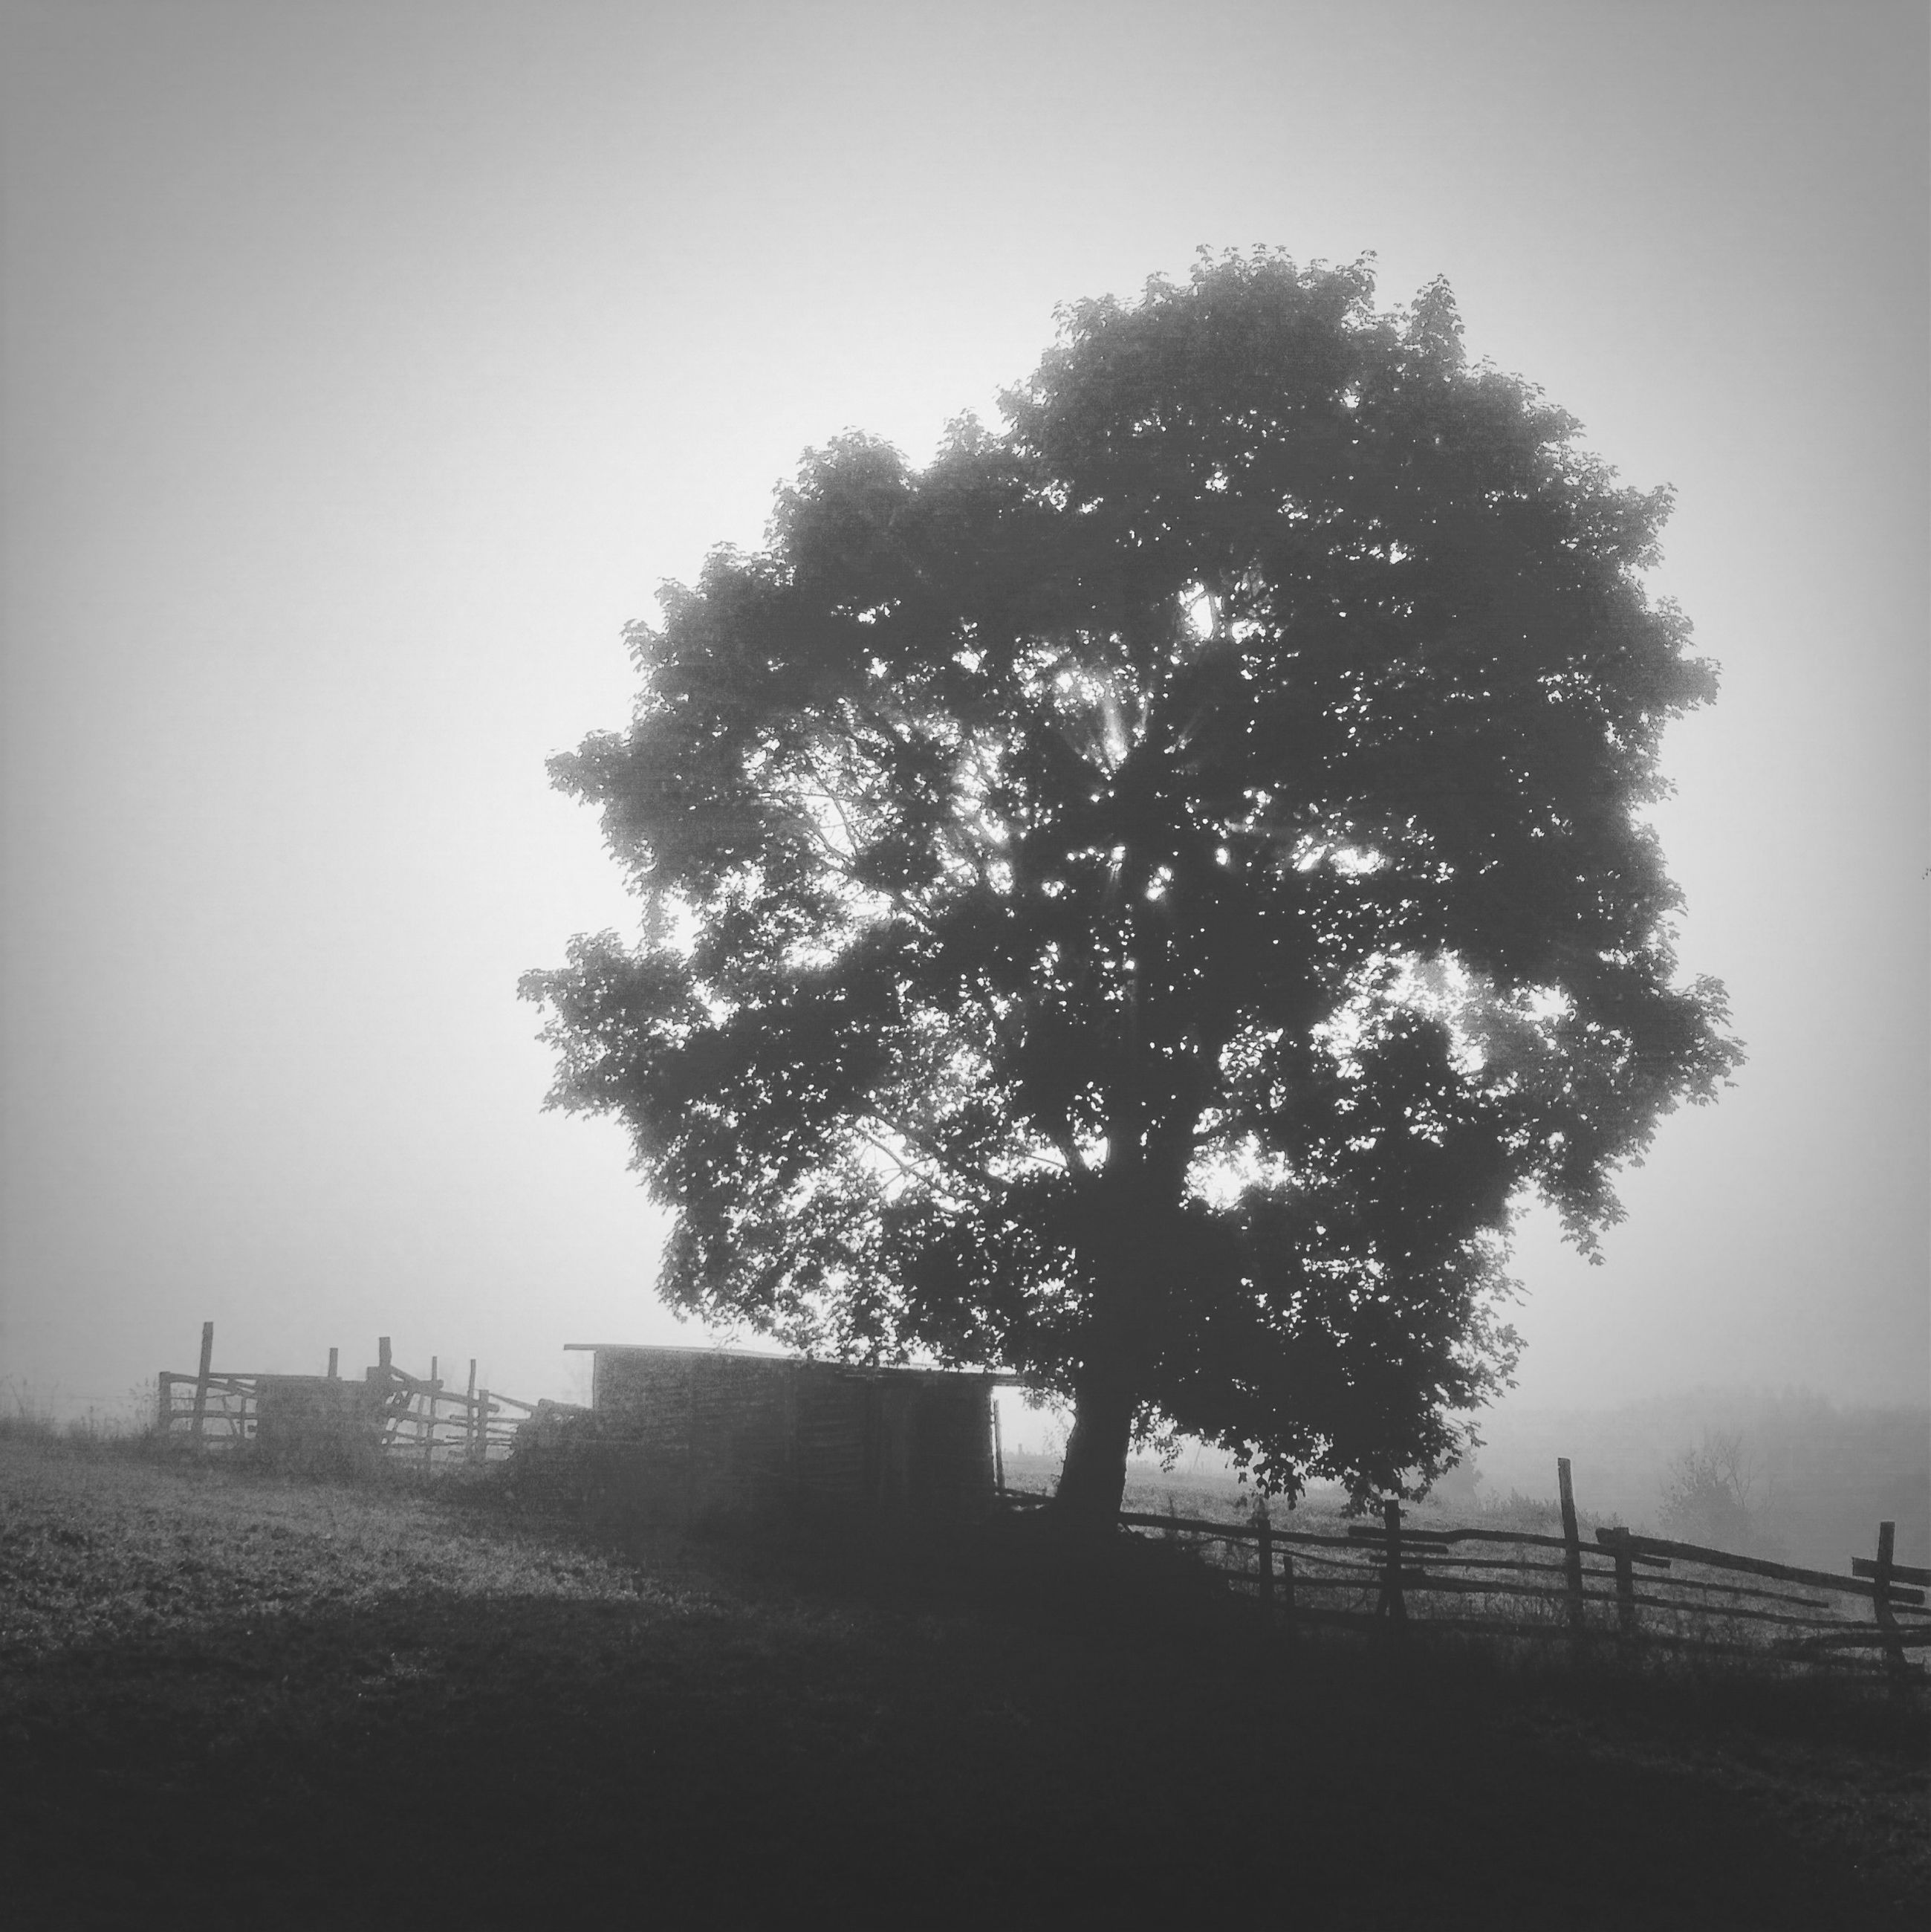 tree, clear sky, copy space, tranquility, fence, landscape, field, tranquil scene, nature, foggy, railing, sky, beauty in nature, scenics, bare tree, growth, outdoors, built structure, no people